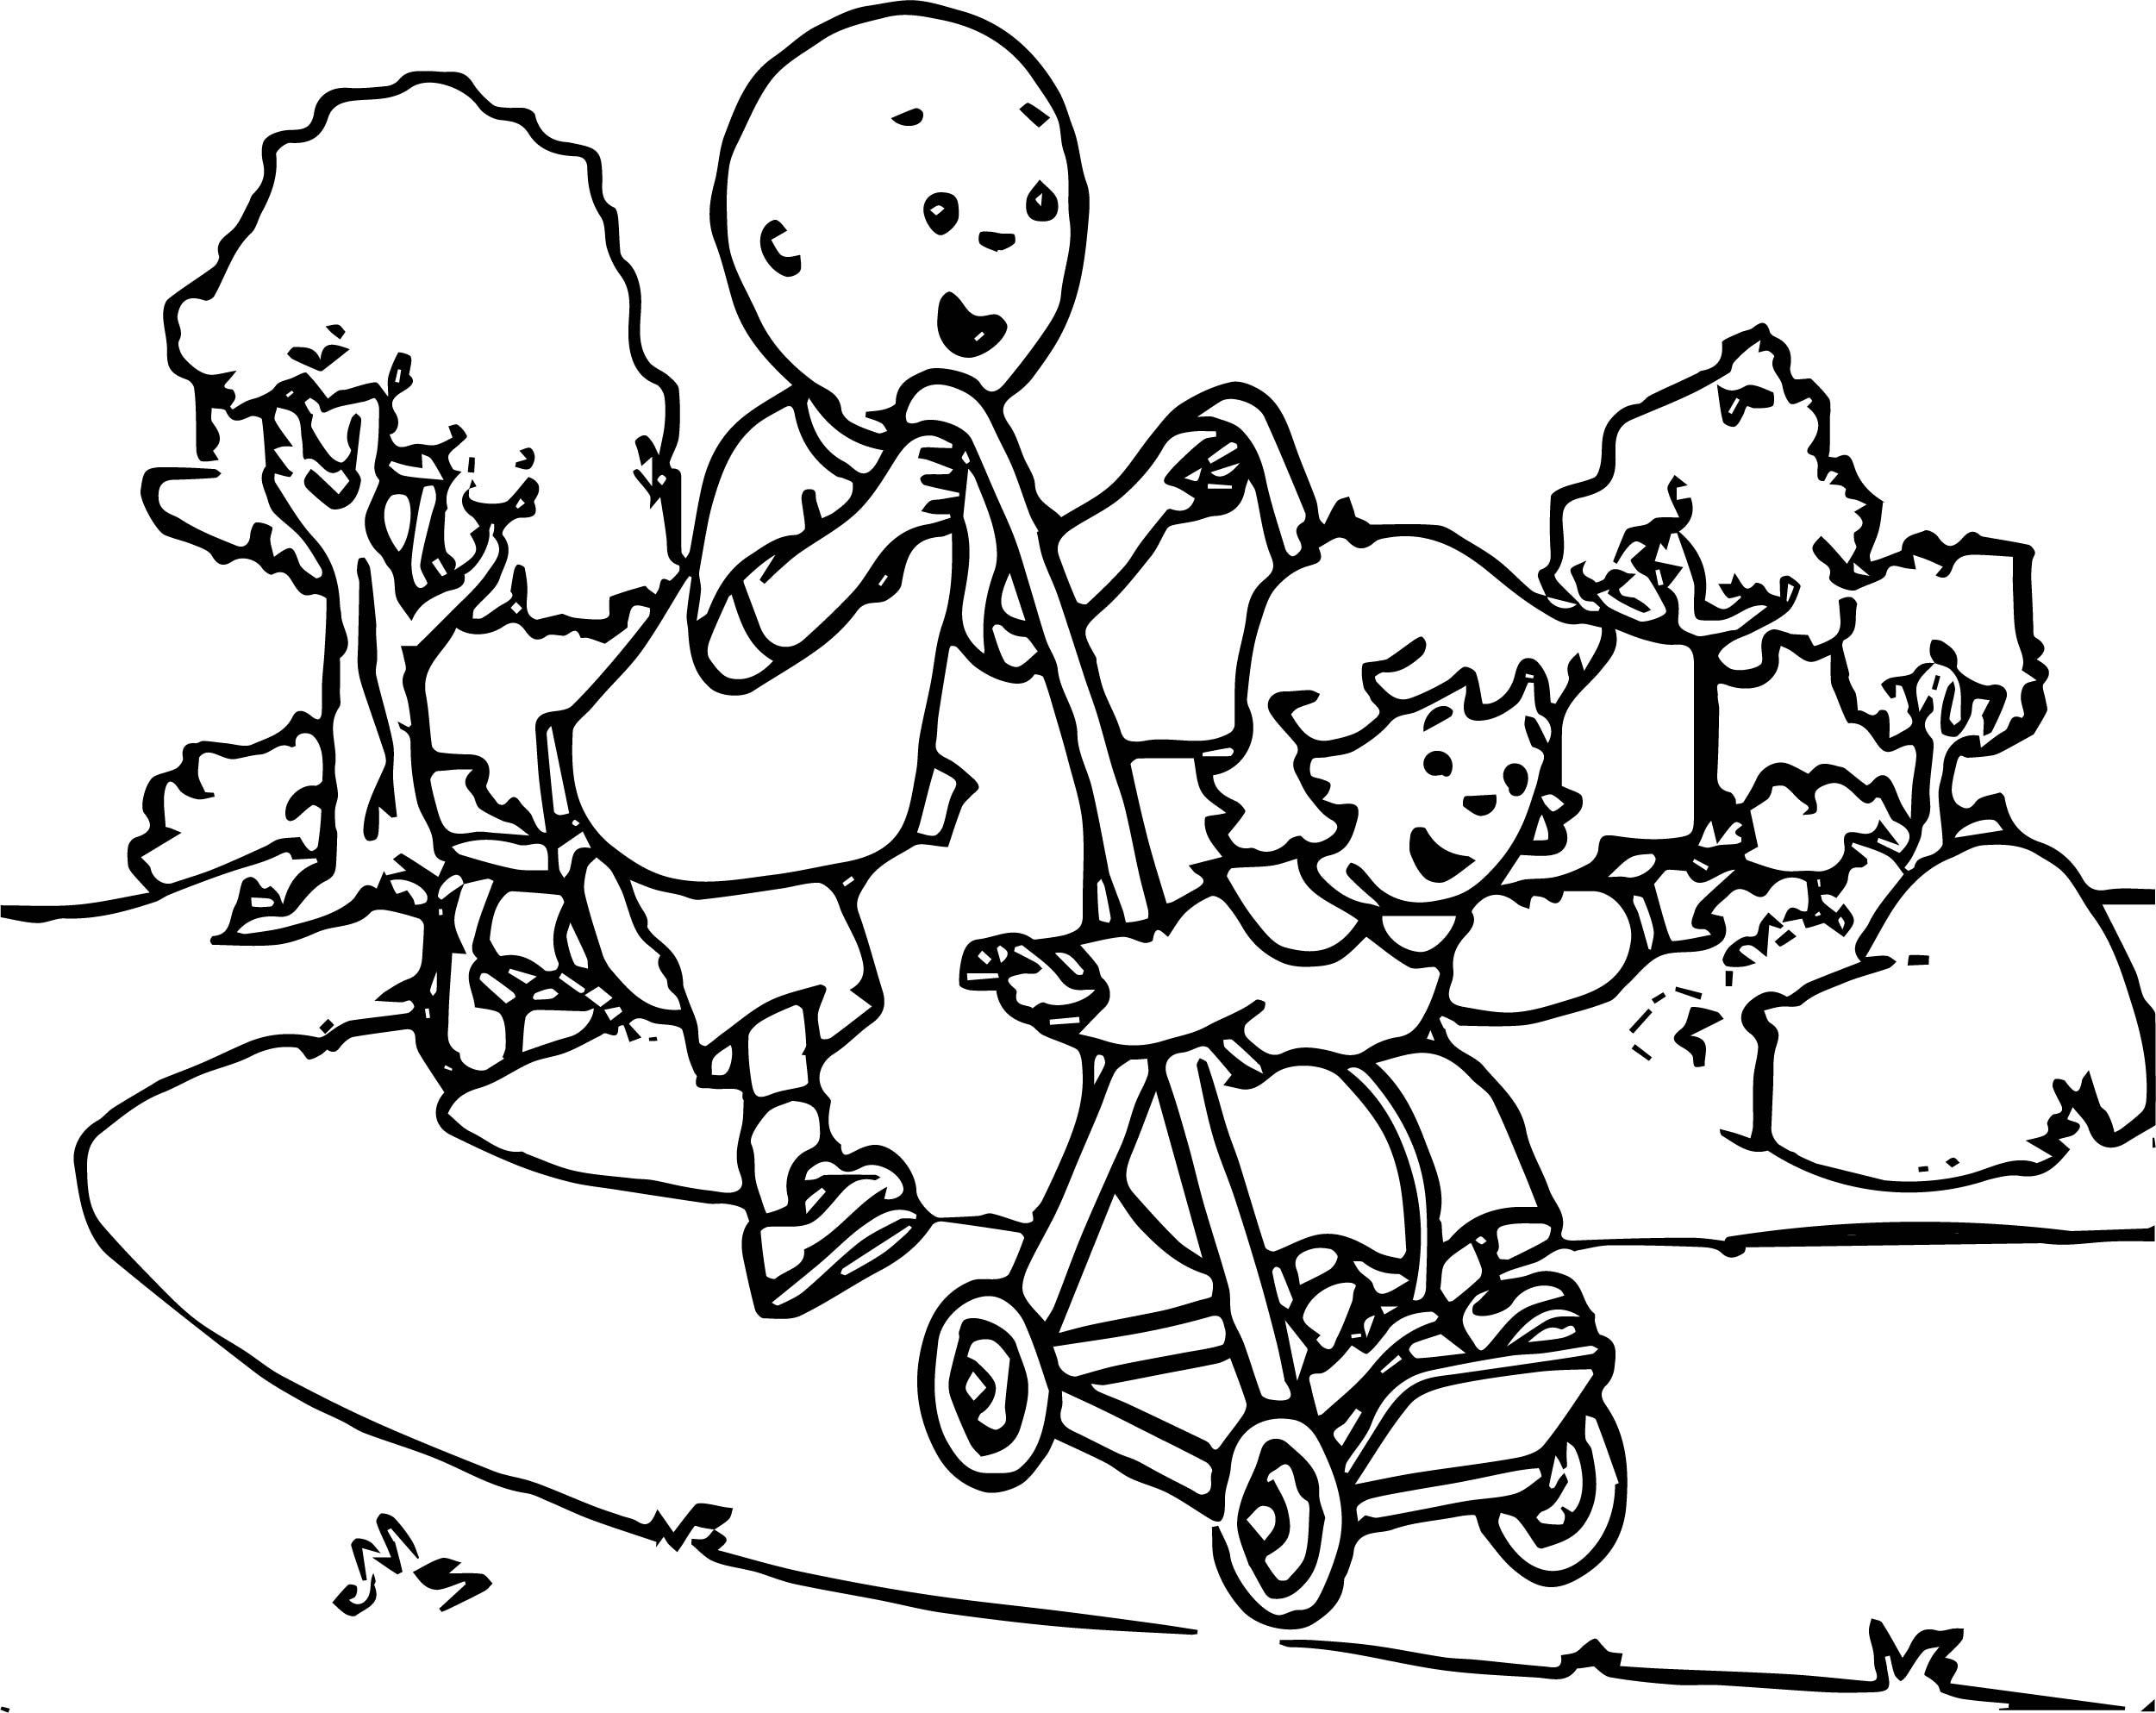 Caillou Running In The Park Coloring Page